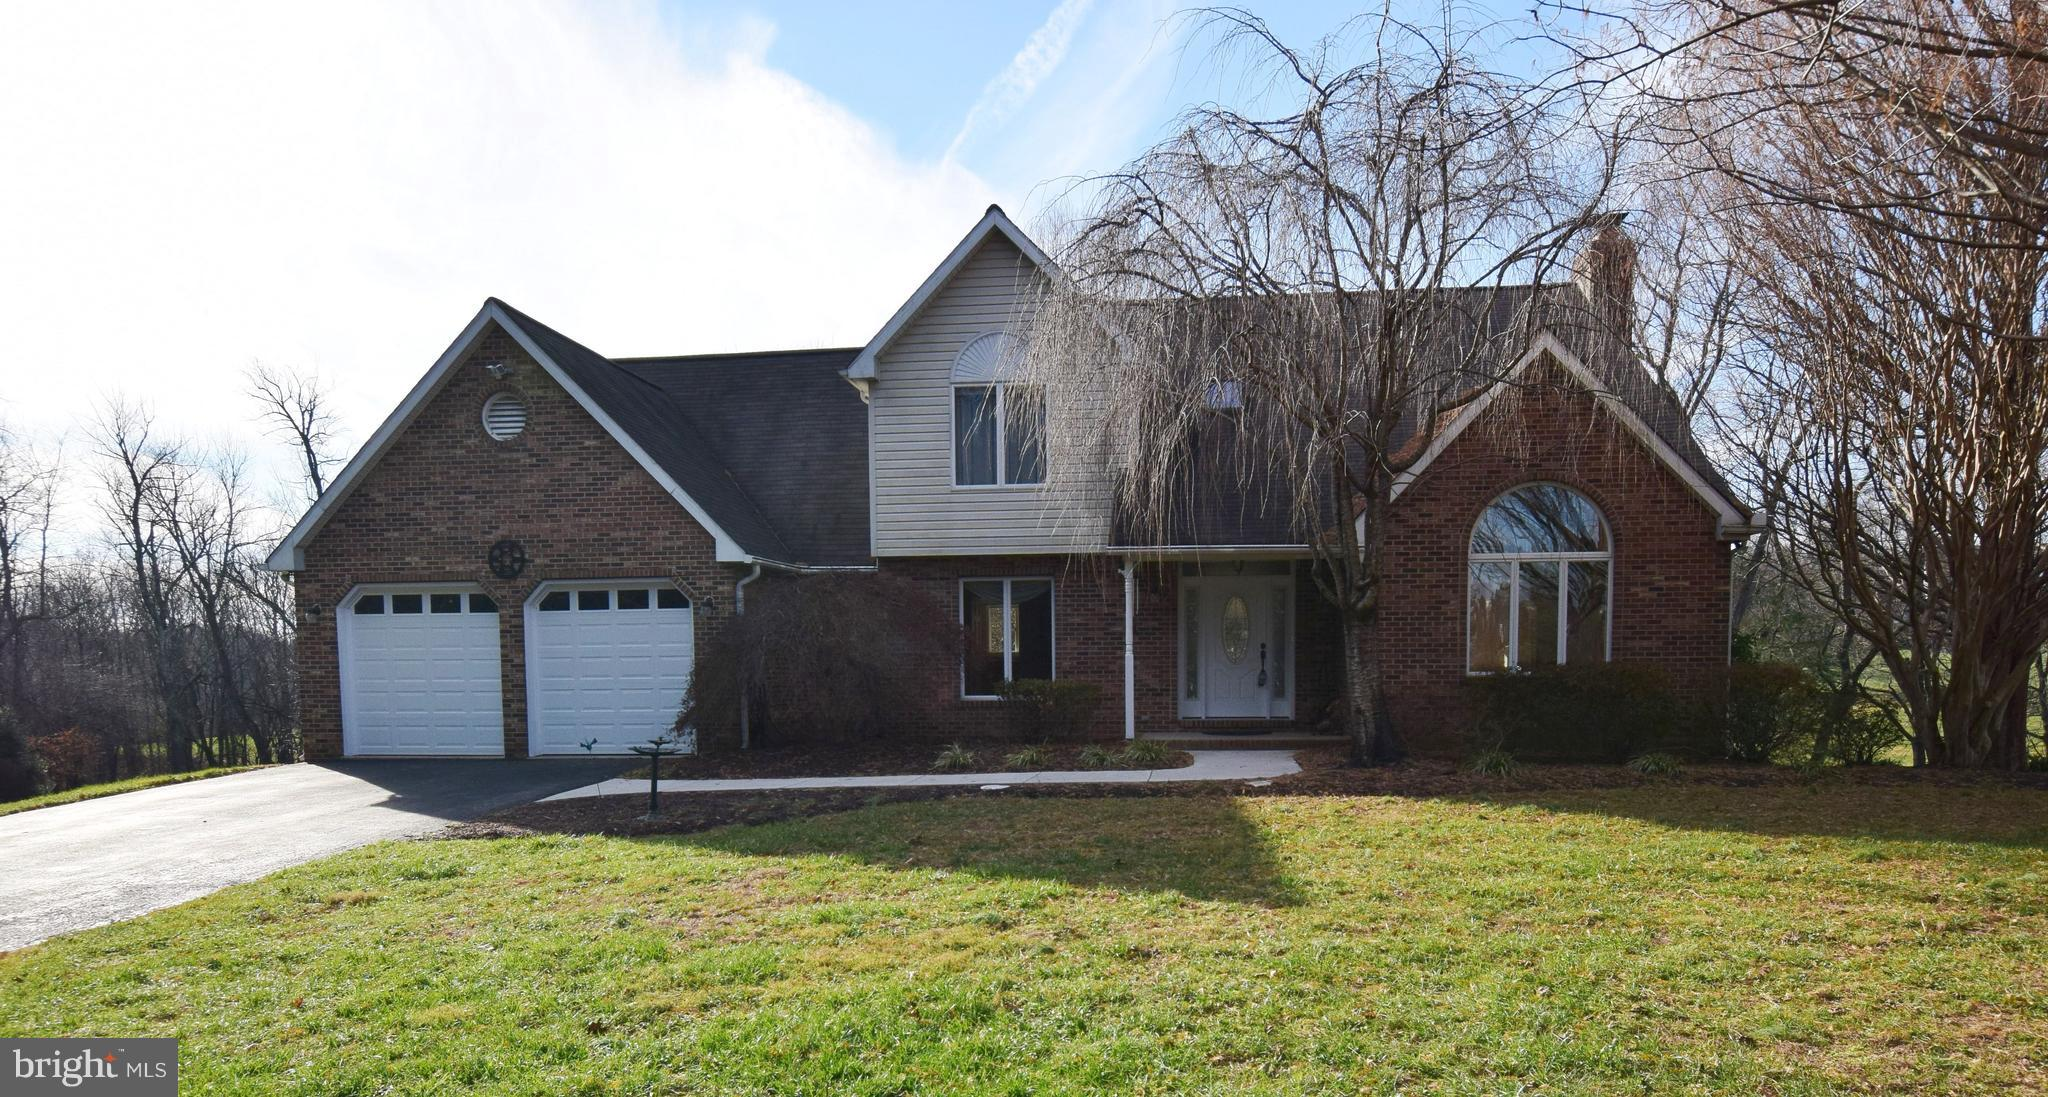 14680 TRIADELPHIA ROAD, GLENELG, MD 21737